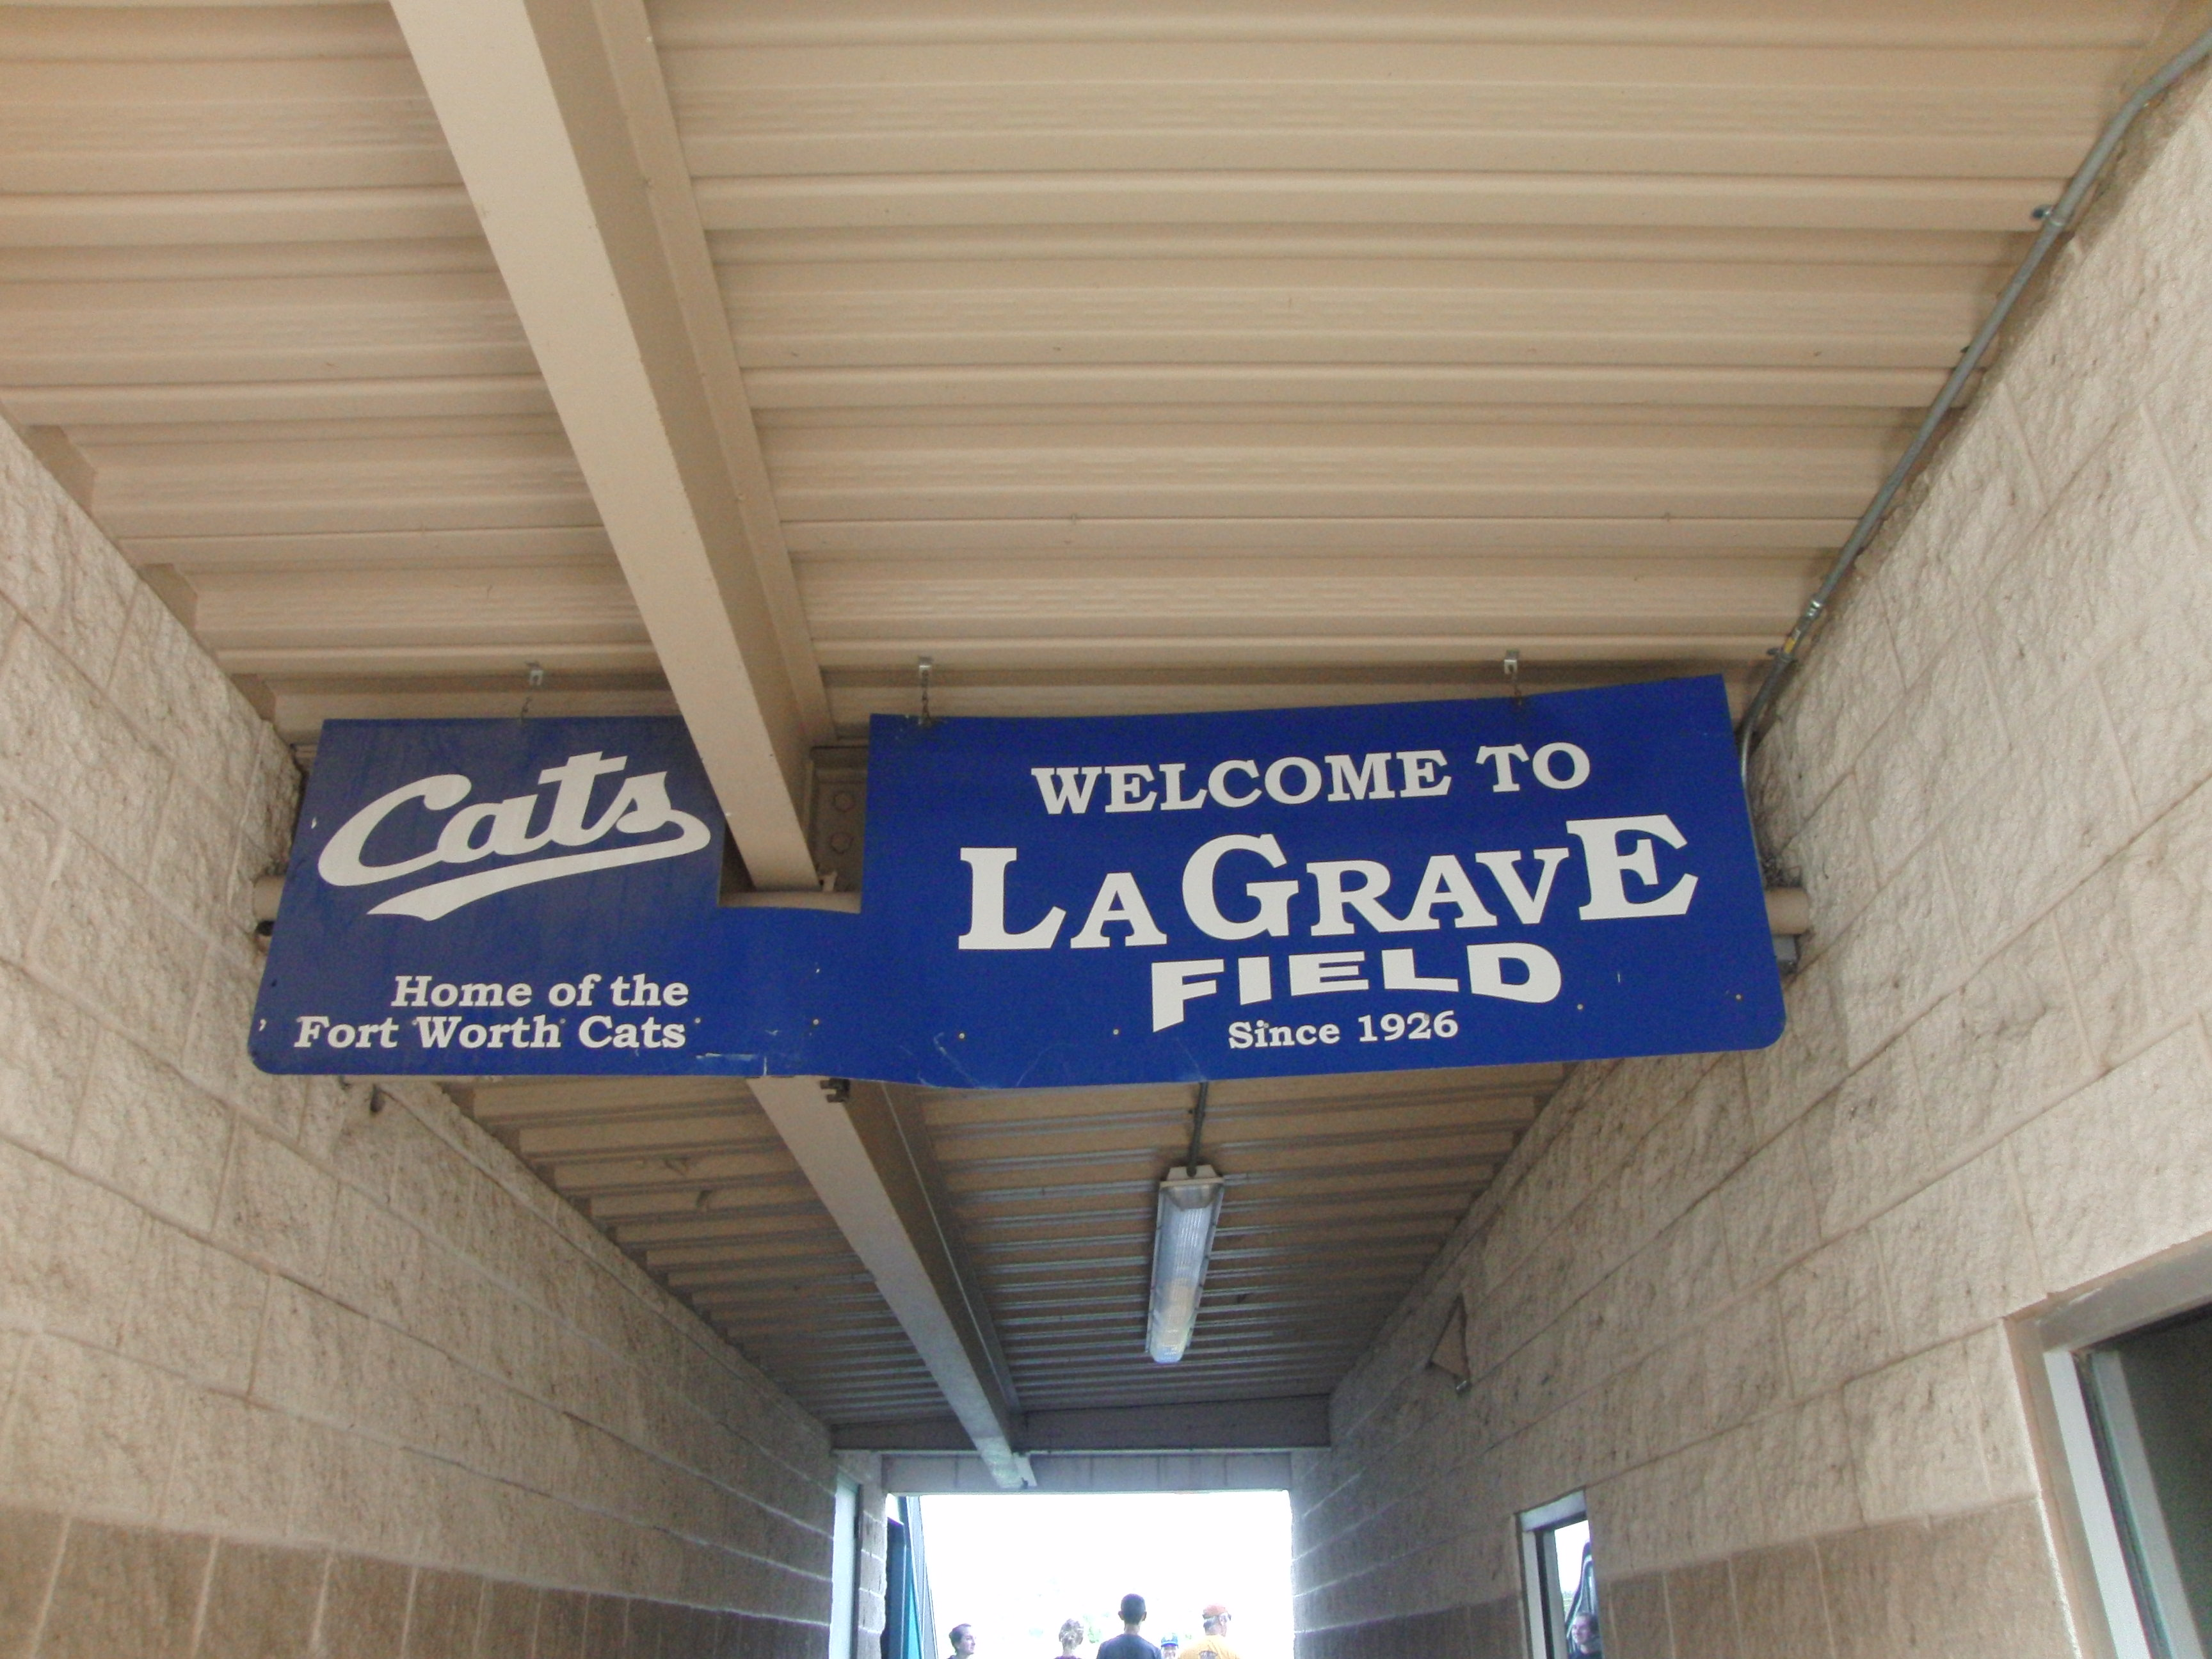 fort worth cats baseball game  lagrave field